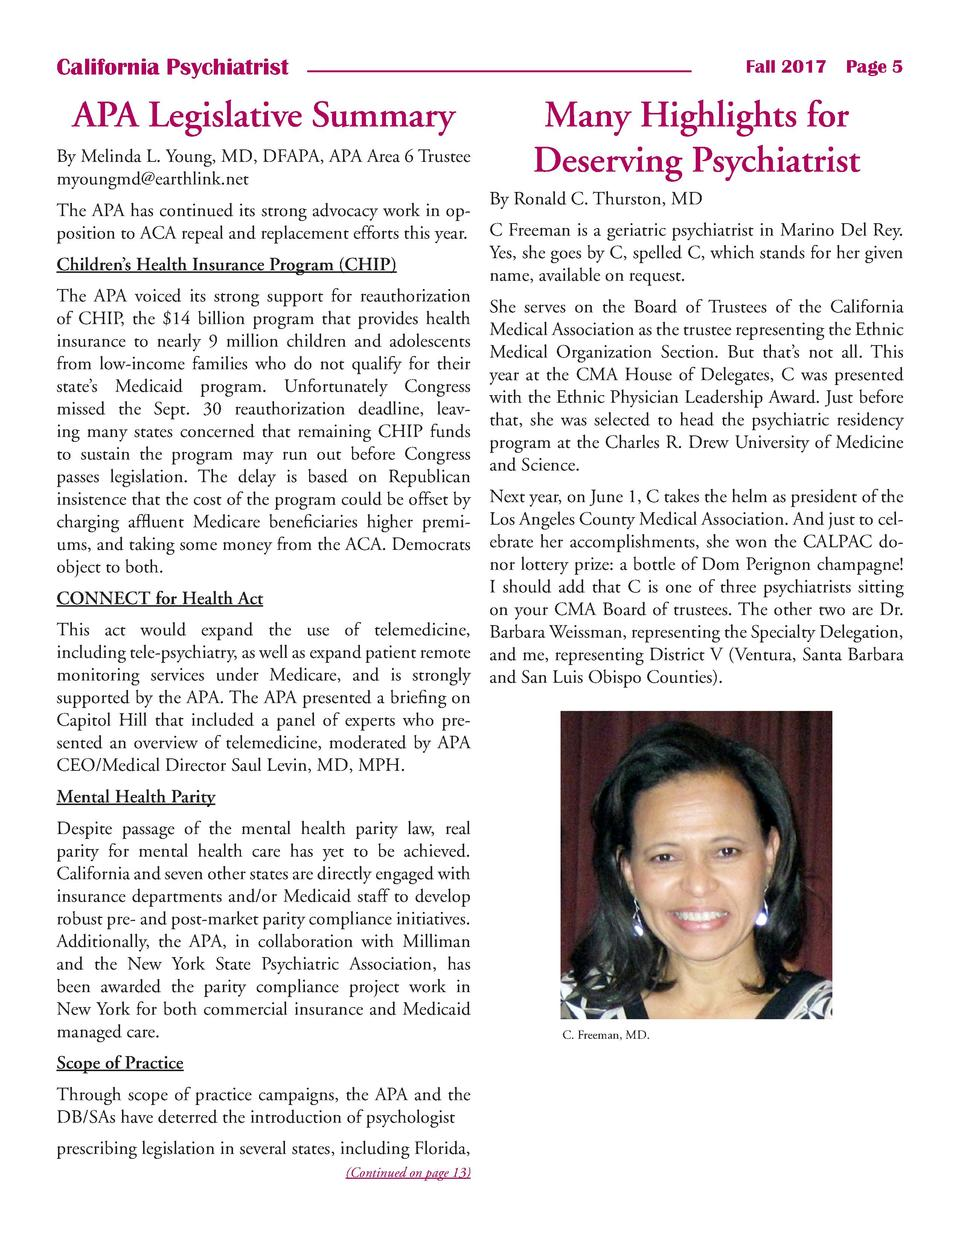 California Psychiatrist  Fall 2017    Page 5  APA Legislative Summary By Melinda L. Young, MD, DFAPA, APA Area 6 Trustee m...